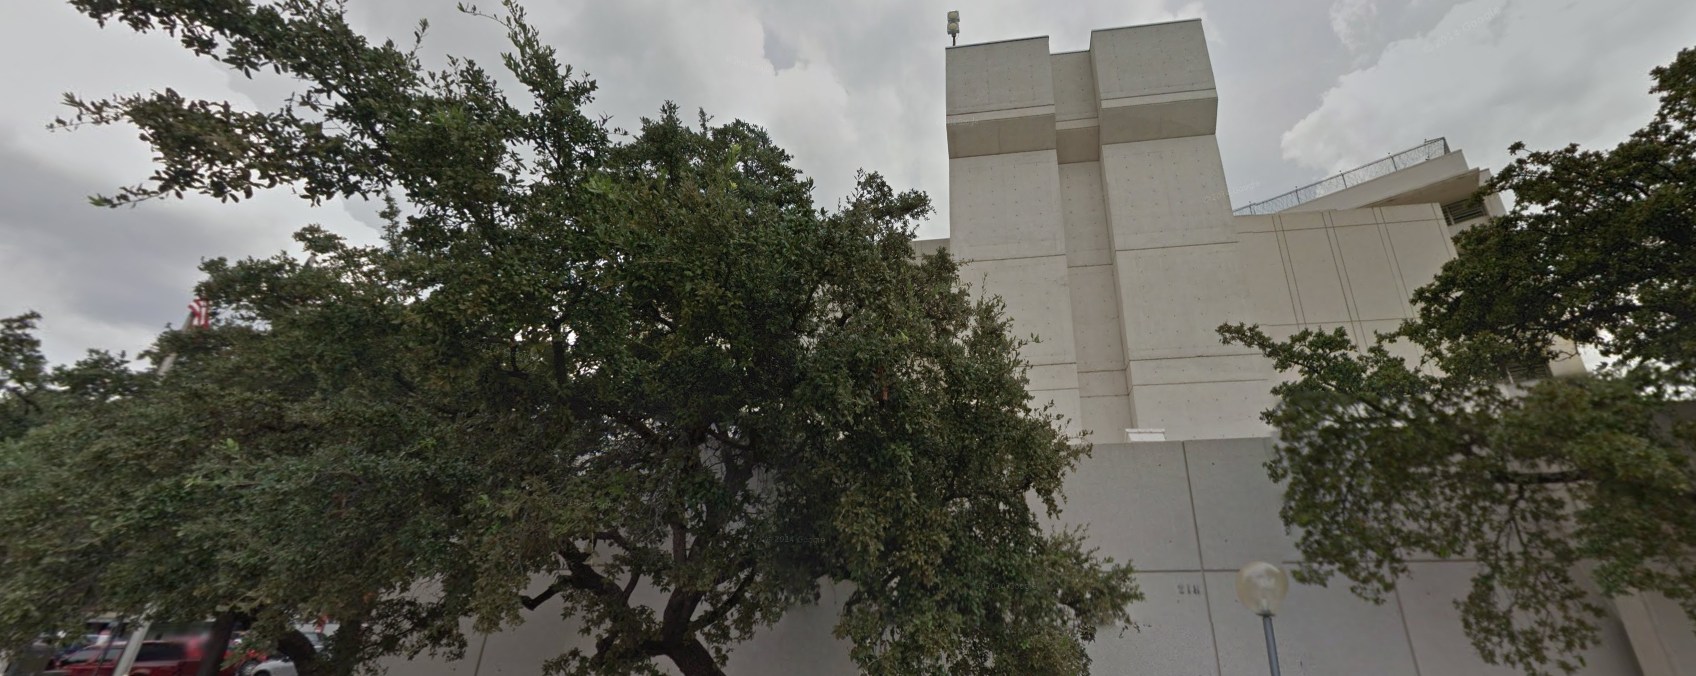 Central Texas Detention Facility (formerly Wackenhut Facility) (United States of America)